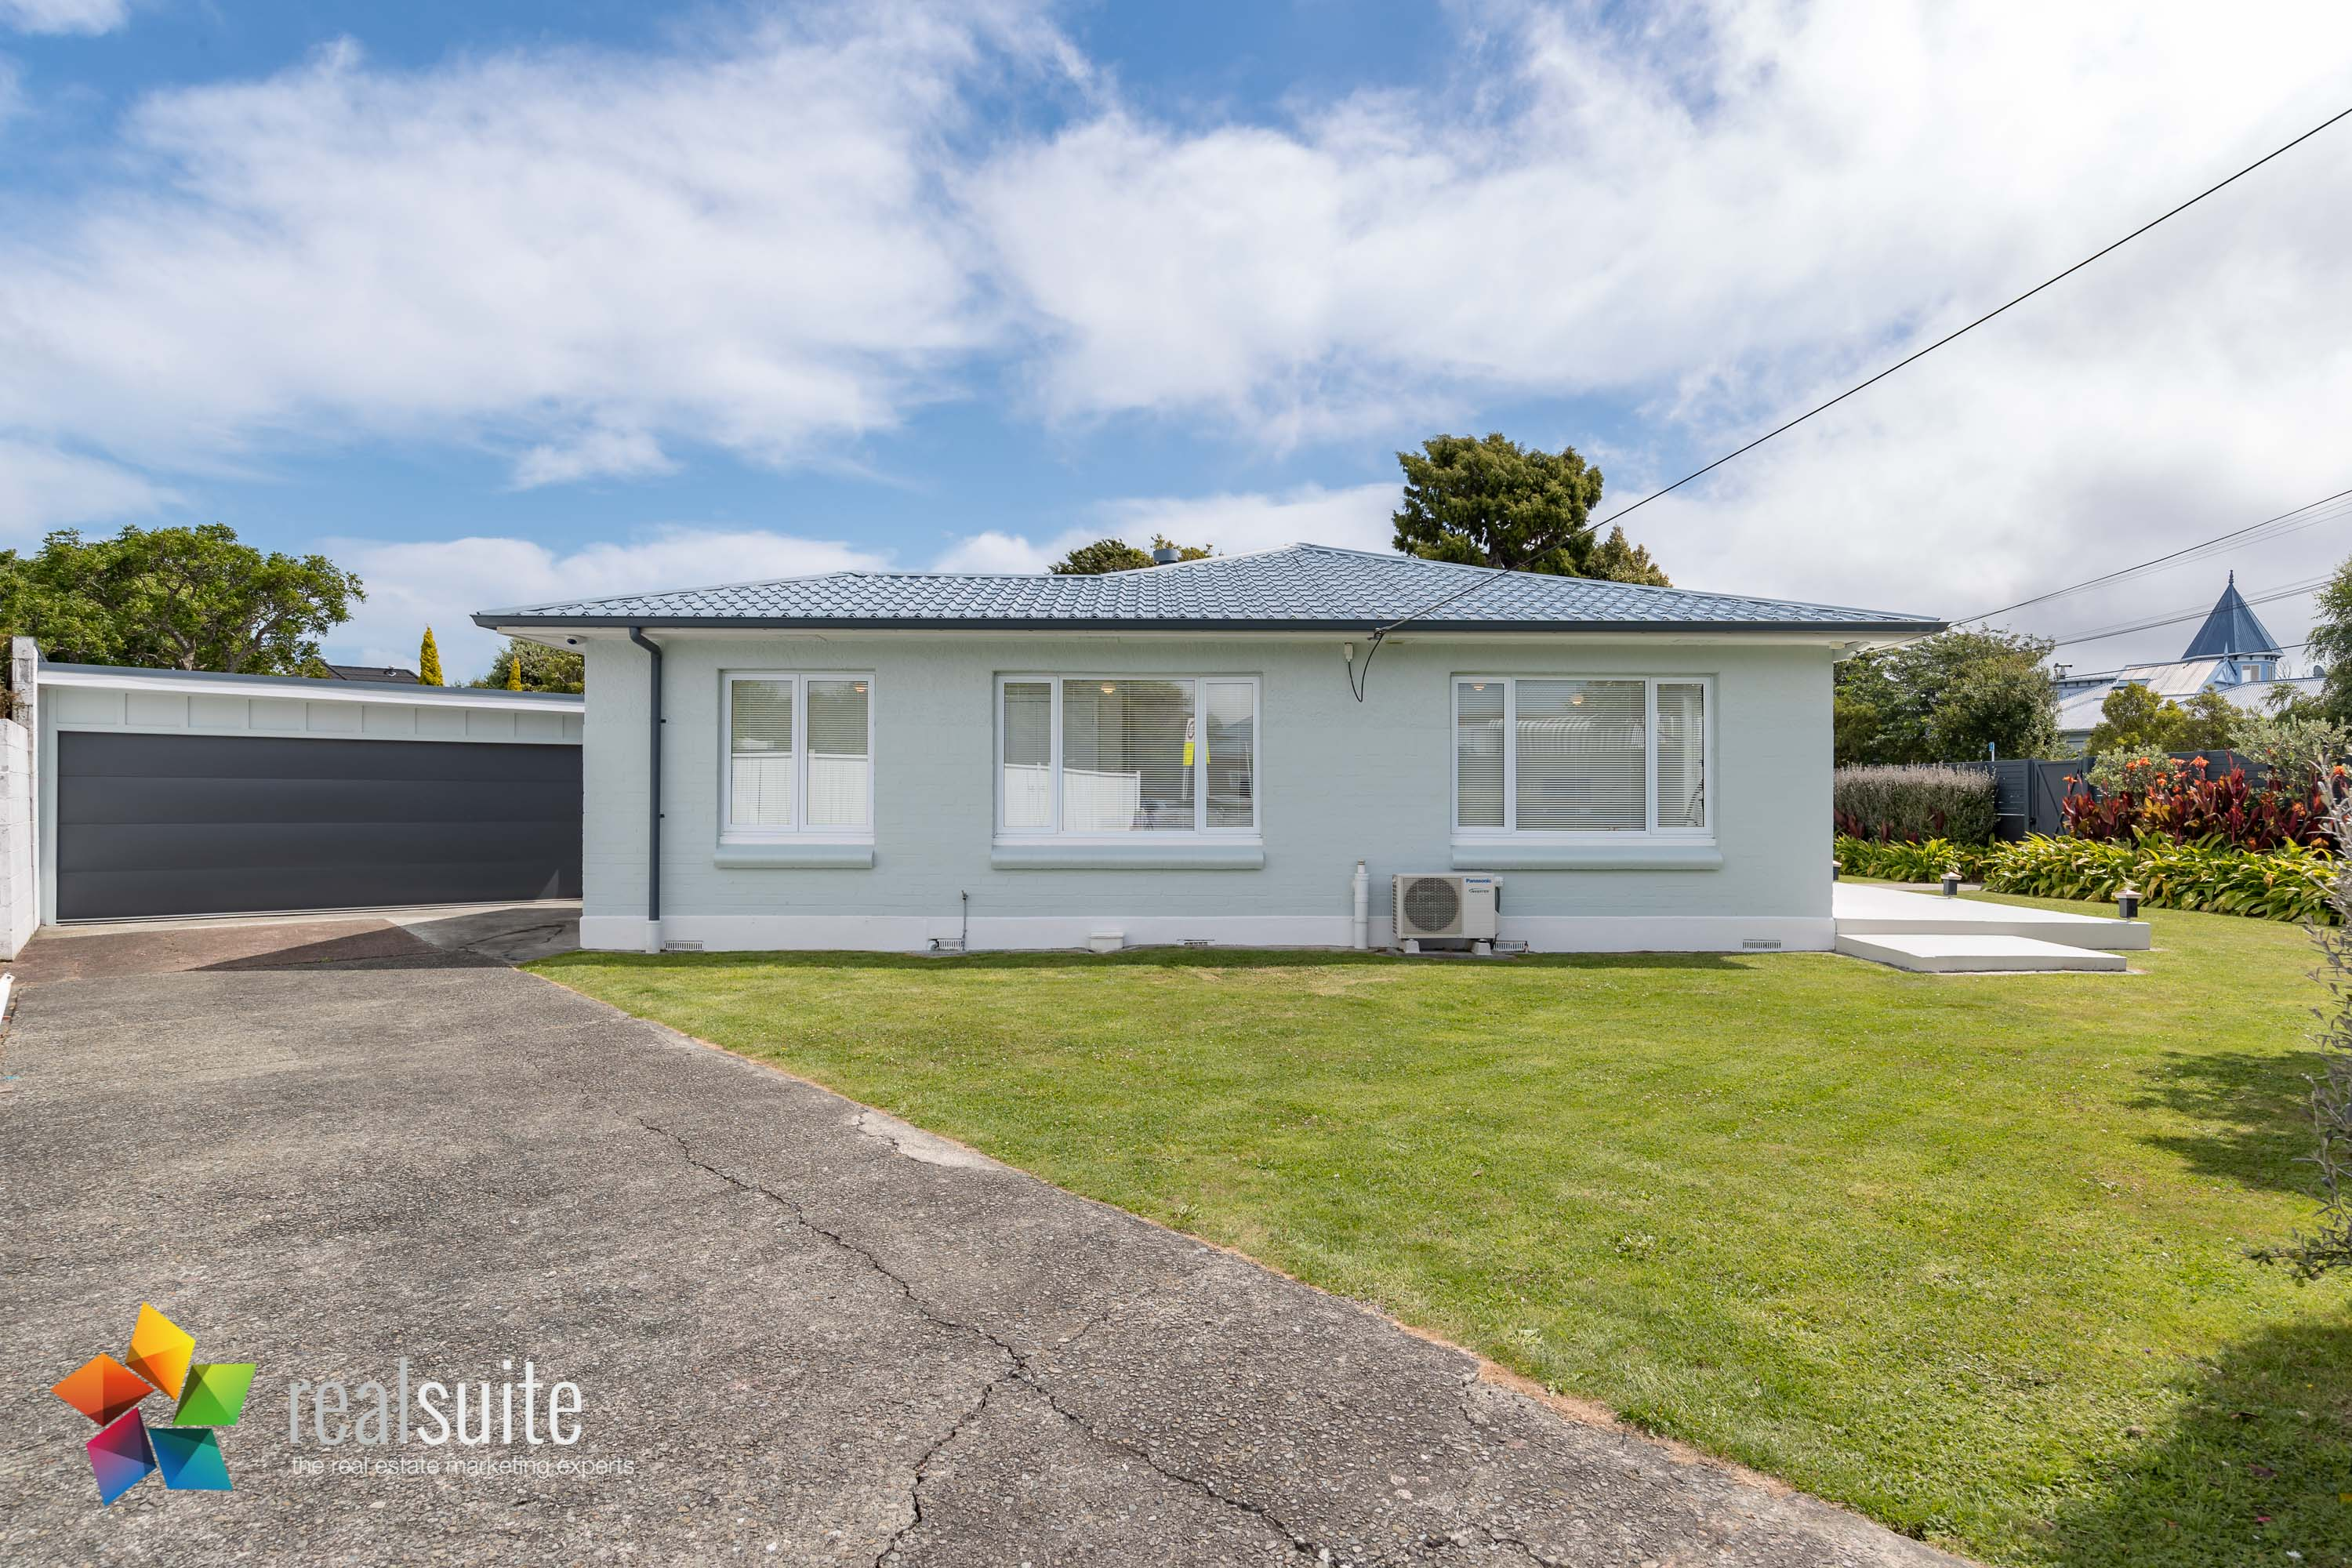 88 Kings Crescent, Lower Hutt 2135 LightsON